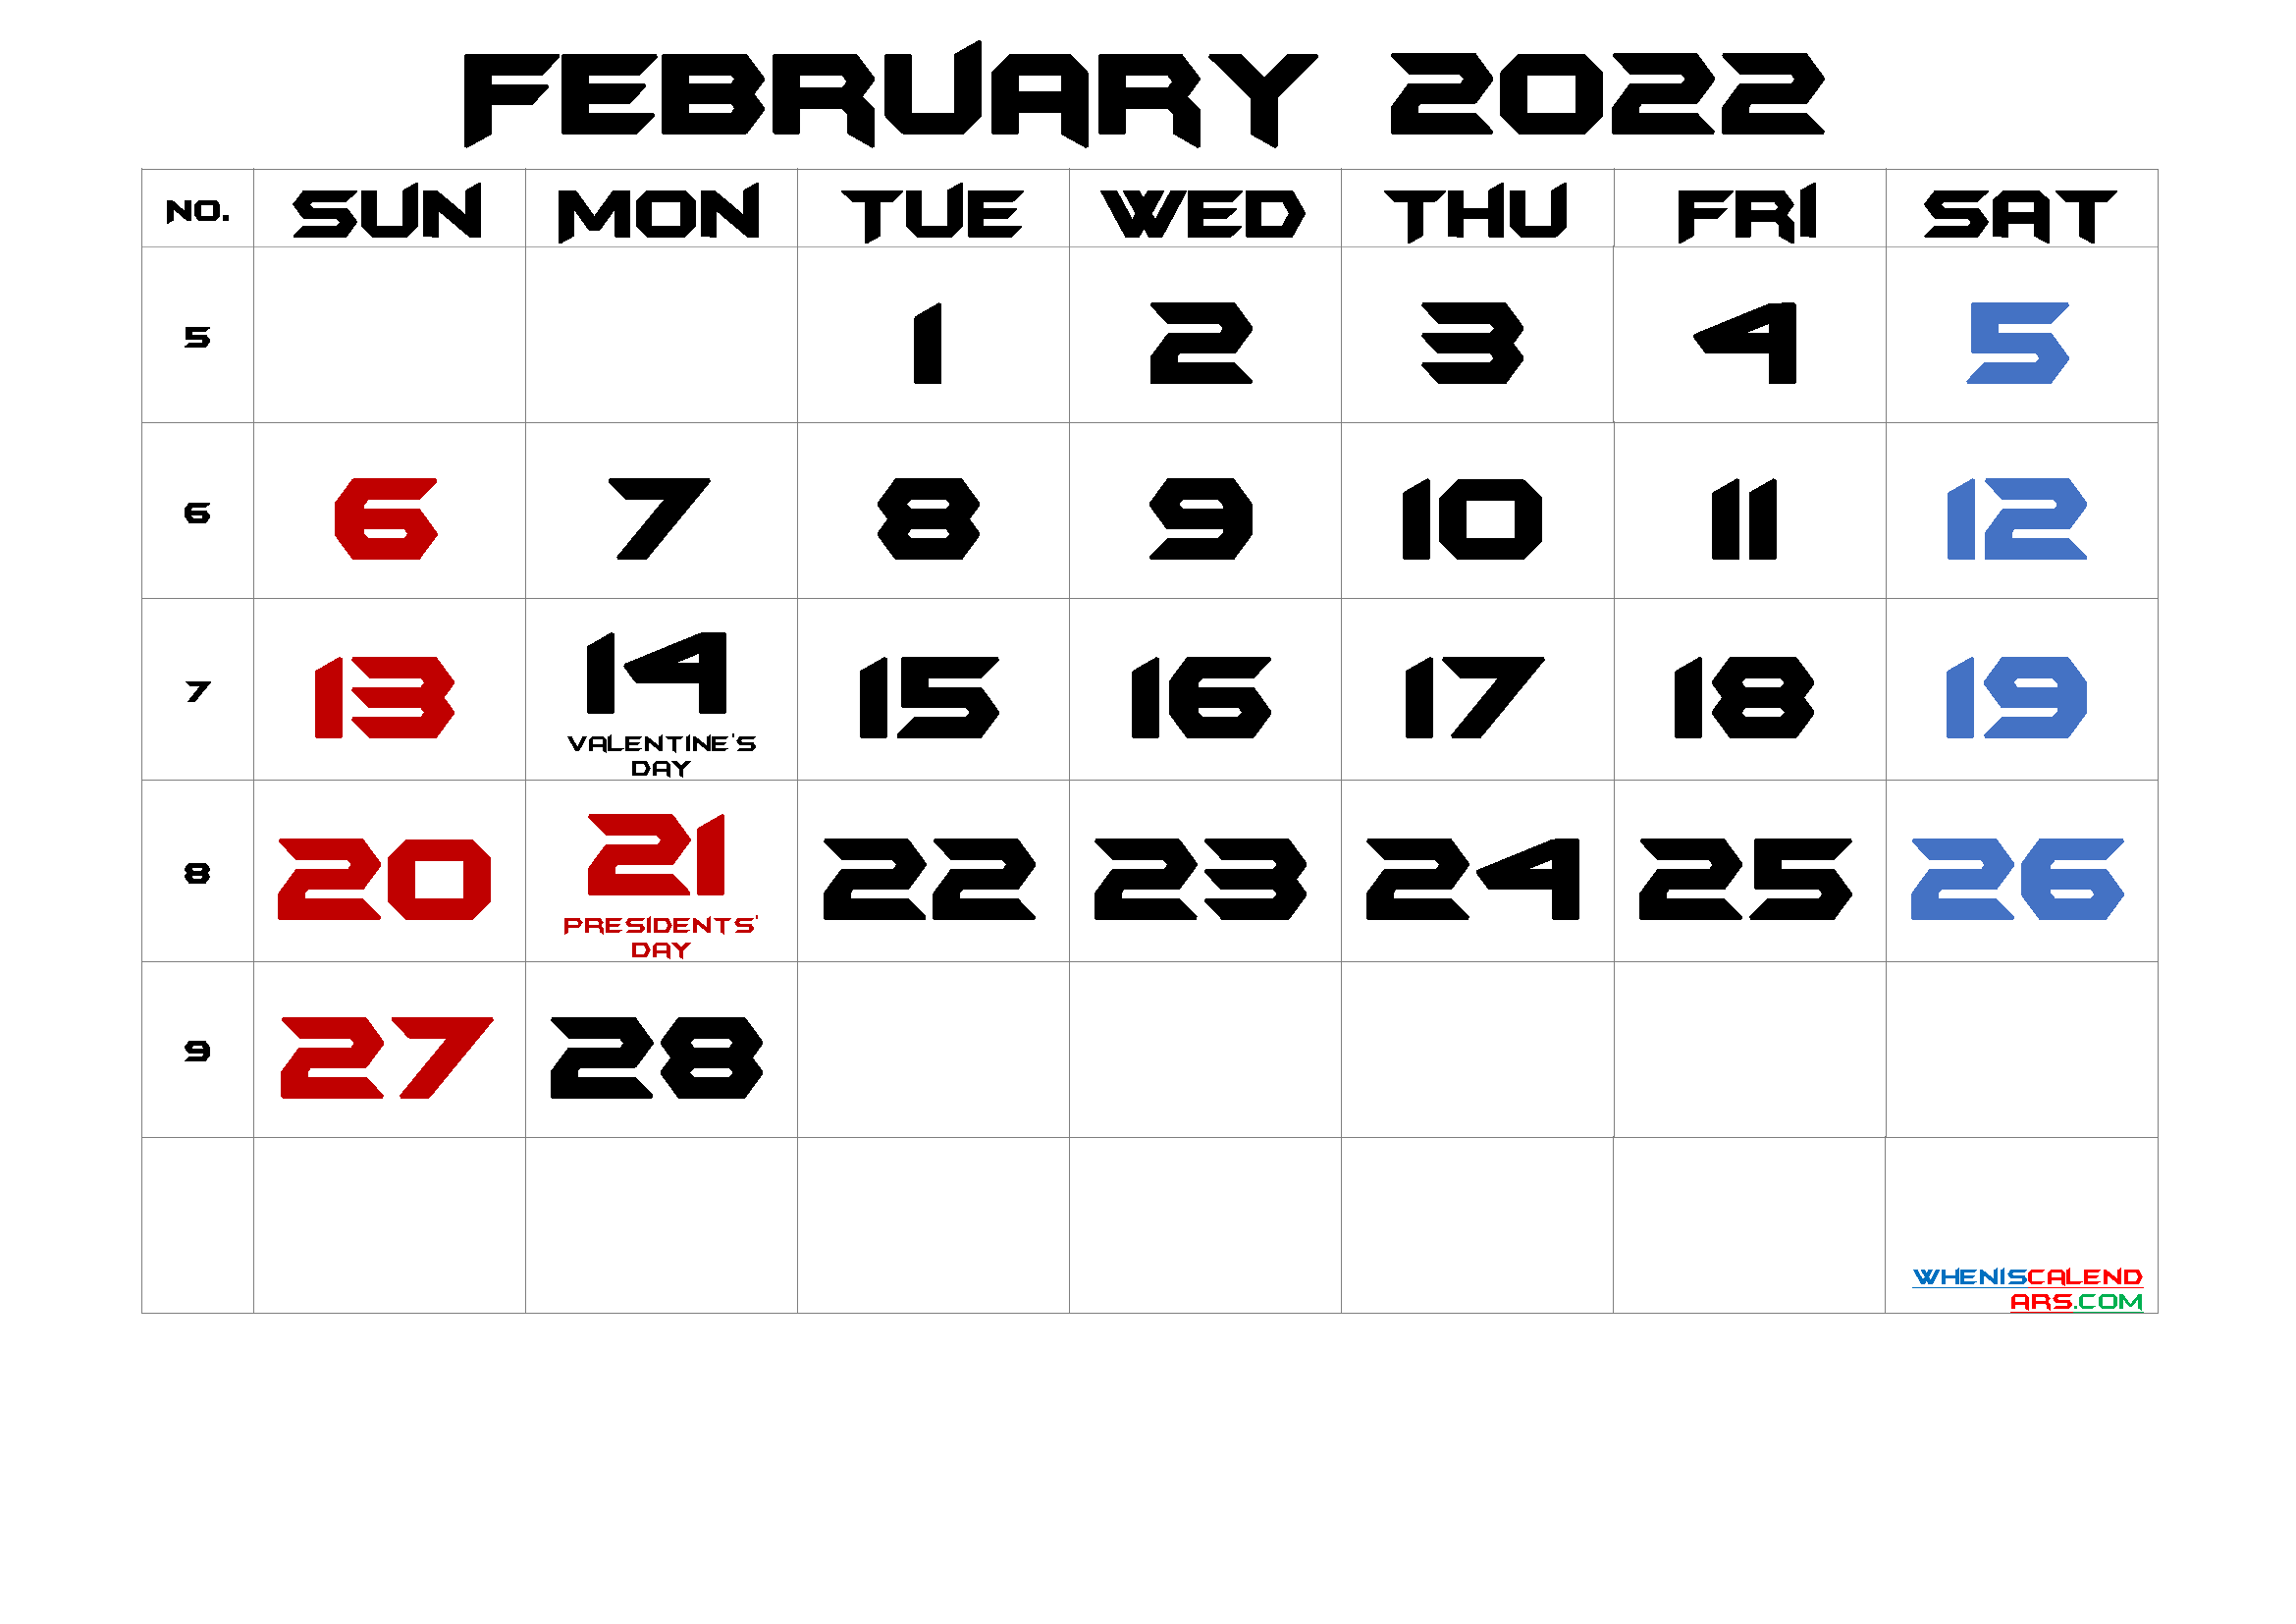 FEBRUARY 2022 Printable Calendar with Holidays